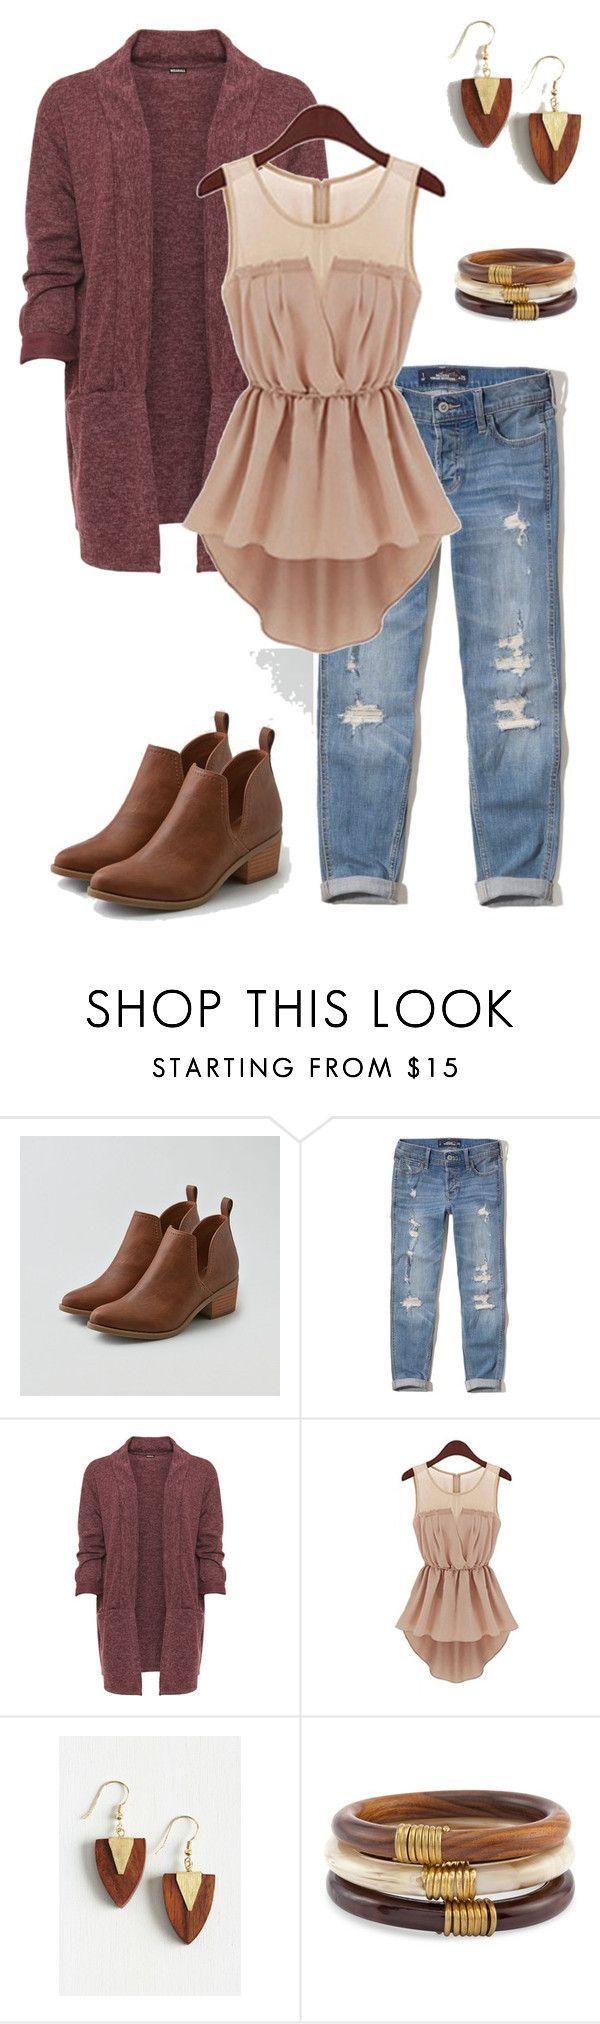 """""""Thanksgiving Outfit"""" by kayla-nelson-1 on Polyvore featuring American Eagle Outfitters, Hollister Co., WearAll, Mata Traders,"""